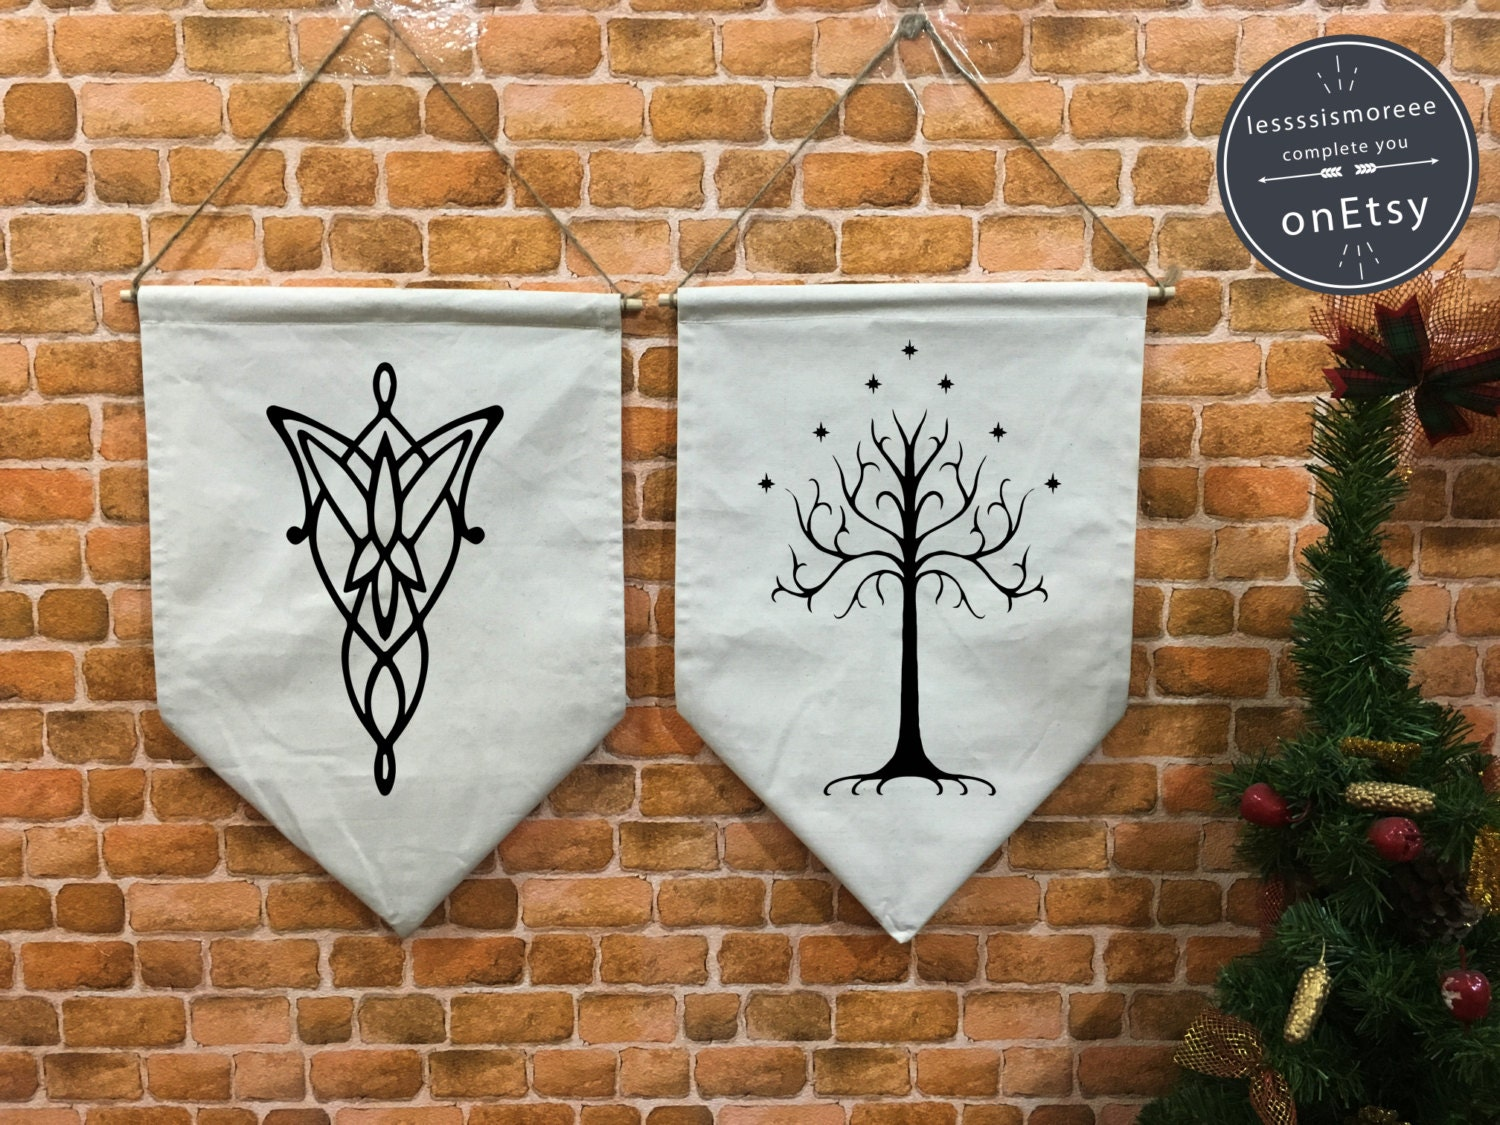 evenstar lotr wedding ring Arwen Evenstar Aragorn White Tree of Gondor banner flag and hanging device lord of the rings wedding wall hanging decoration Wedding gift